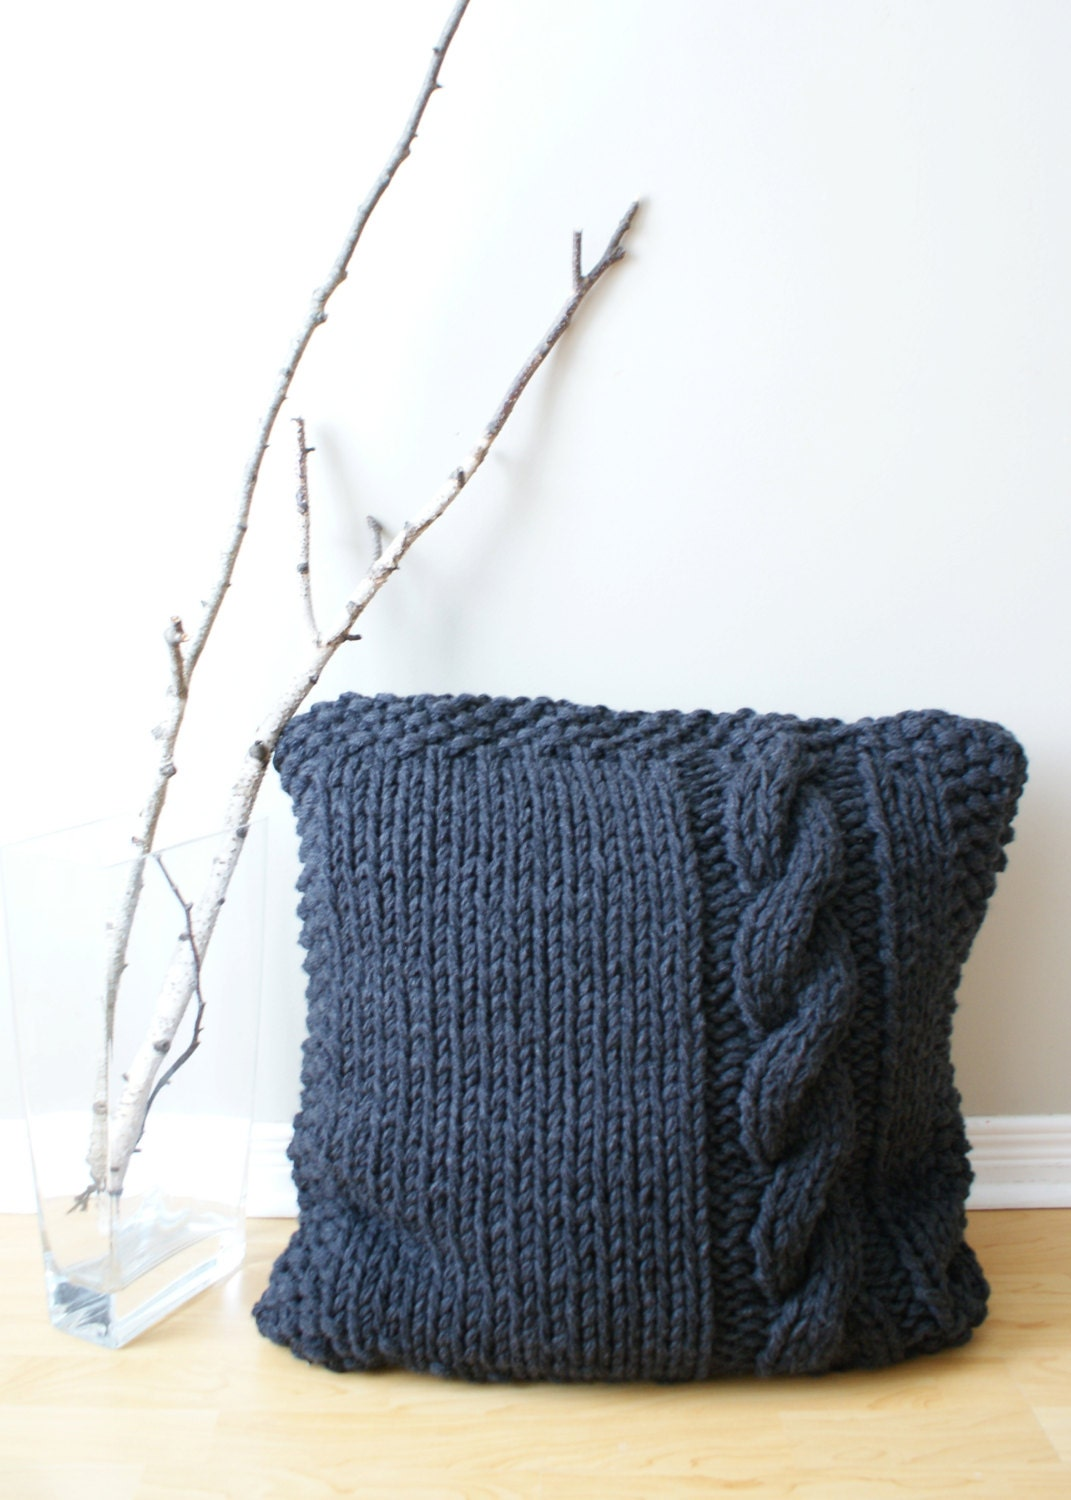 Knitting Pillow Pattern : Diy knitting pattern chunky cable knit pillow cover